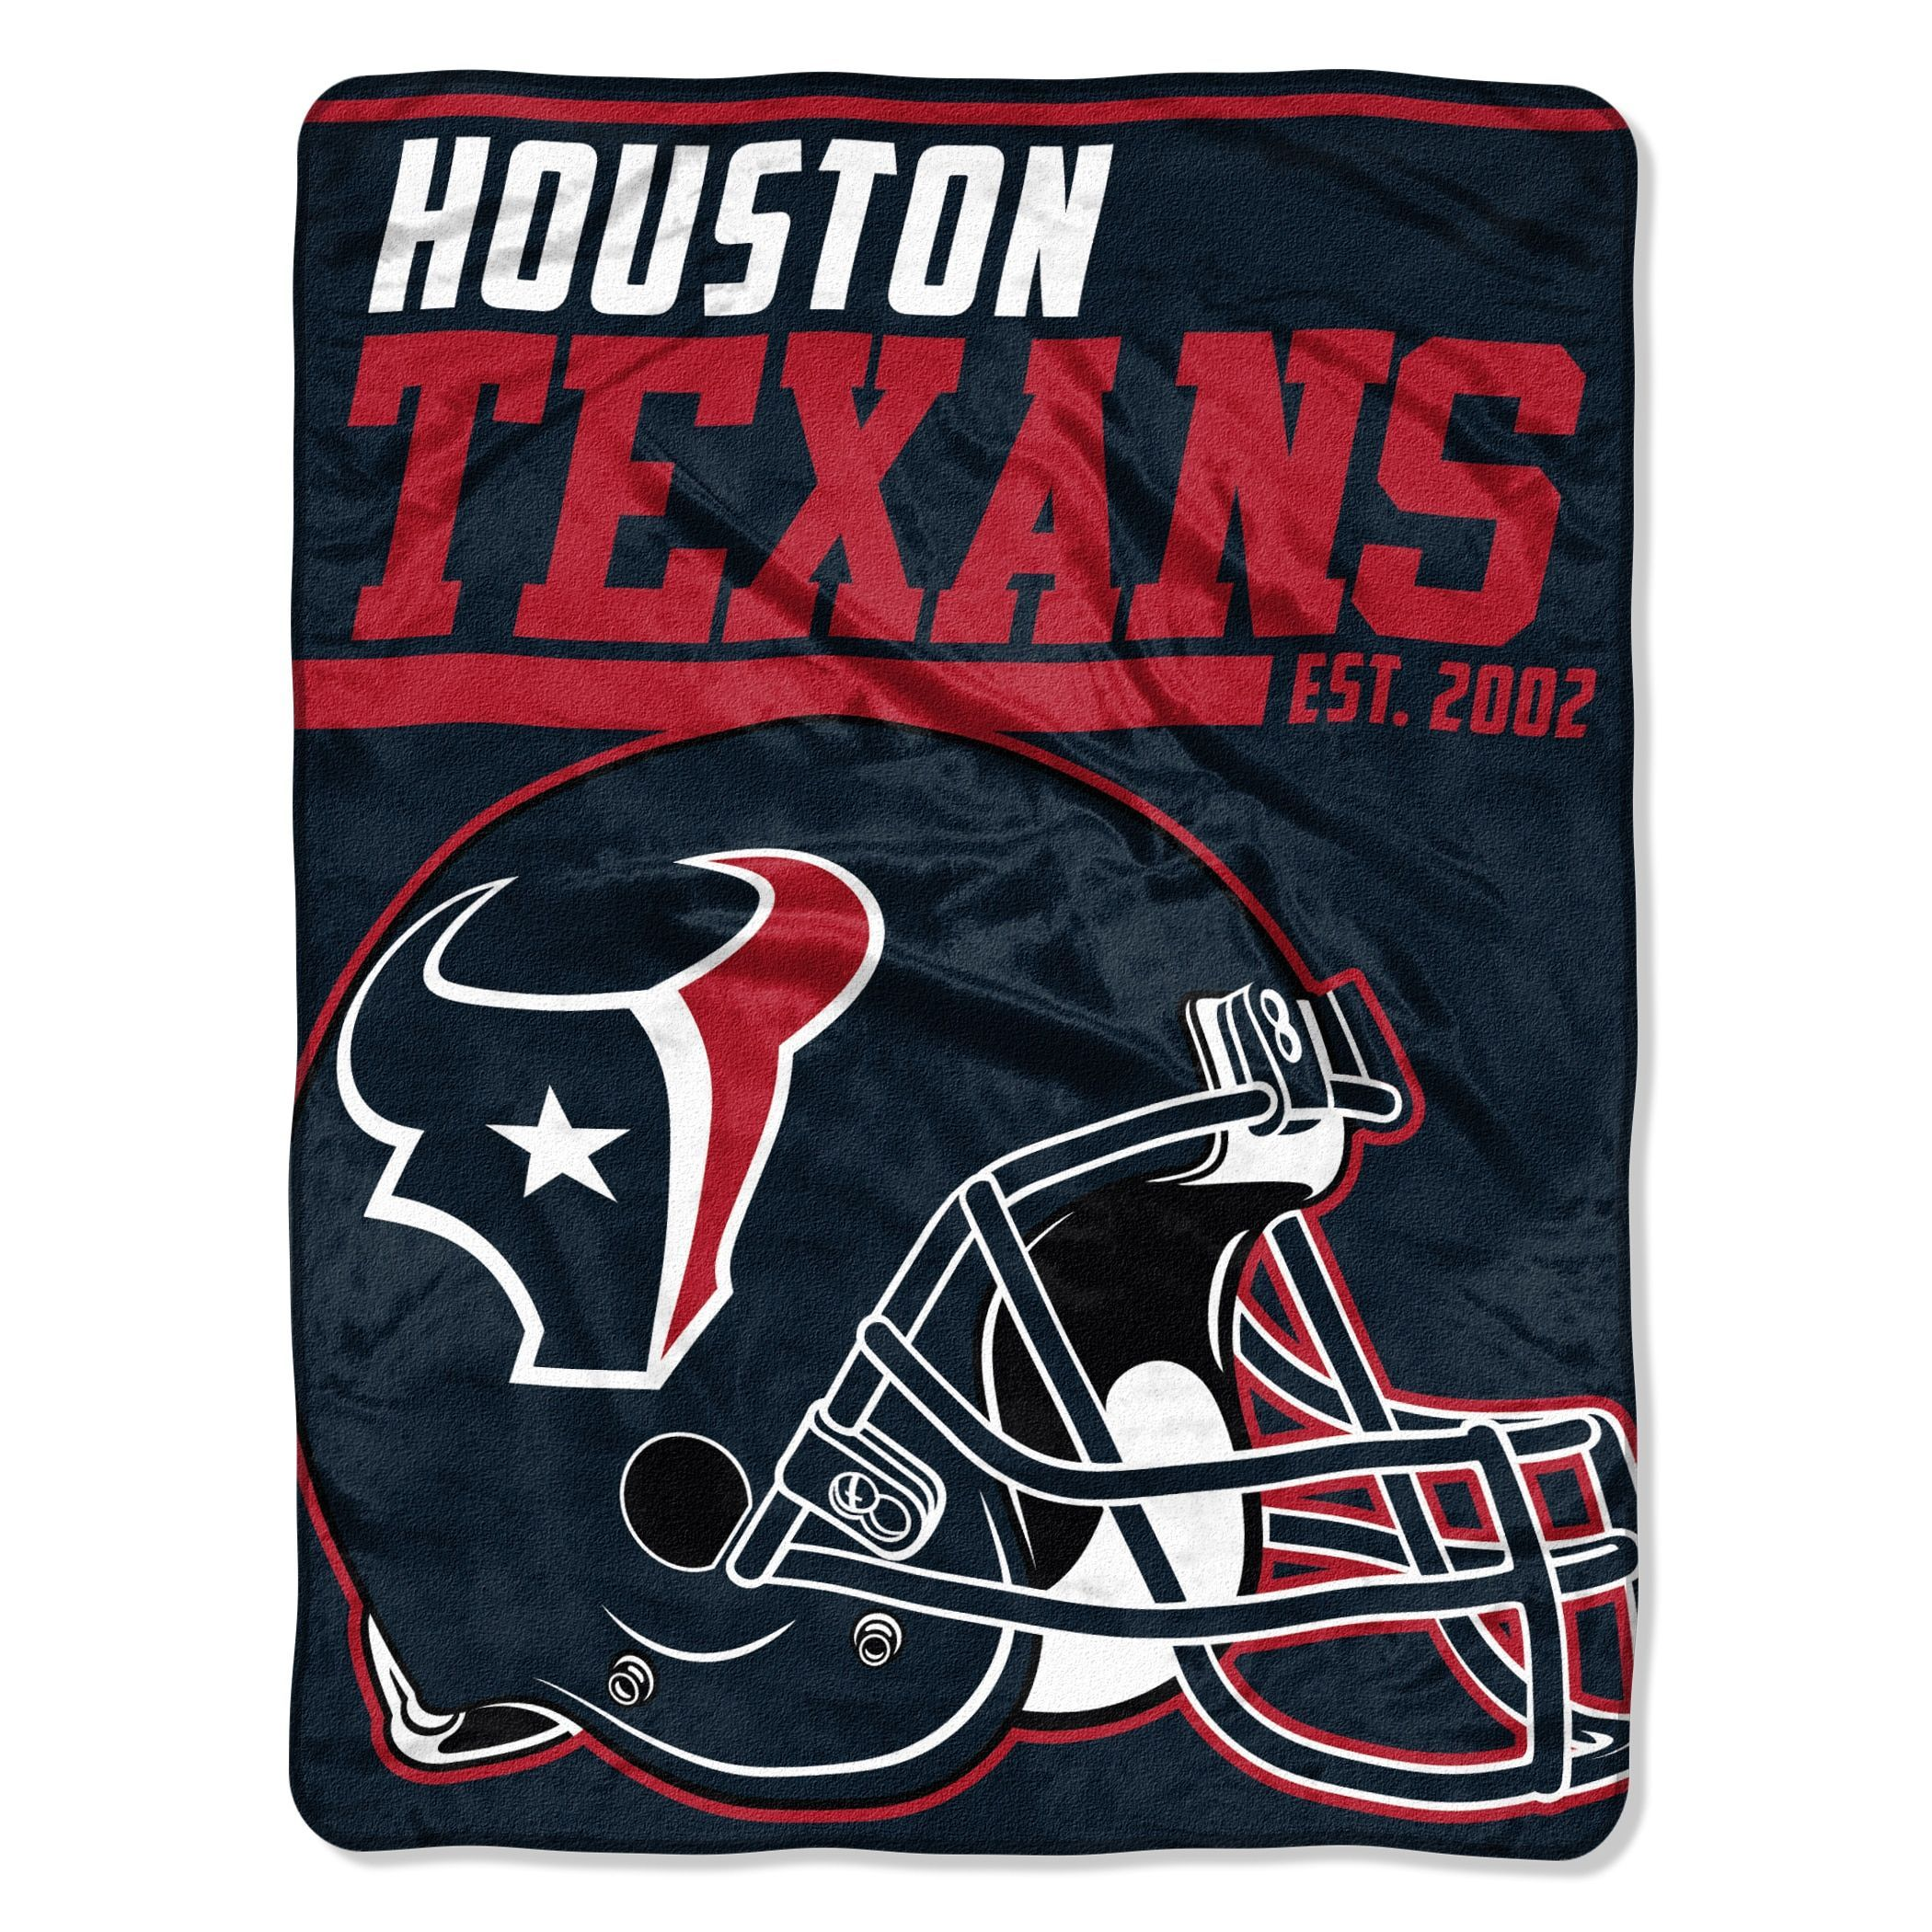 Online Shopping Bedding Furniture Electronics Jewelry Clothing More Nfl Houston Texans Nfl New England Patriots Atlanta Falcons